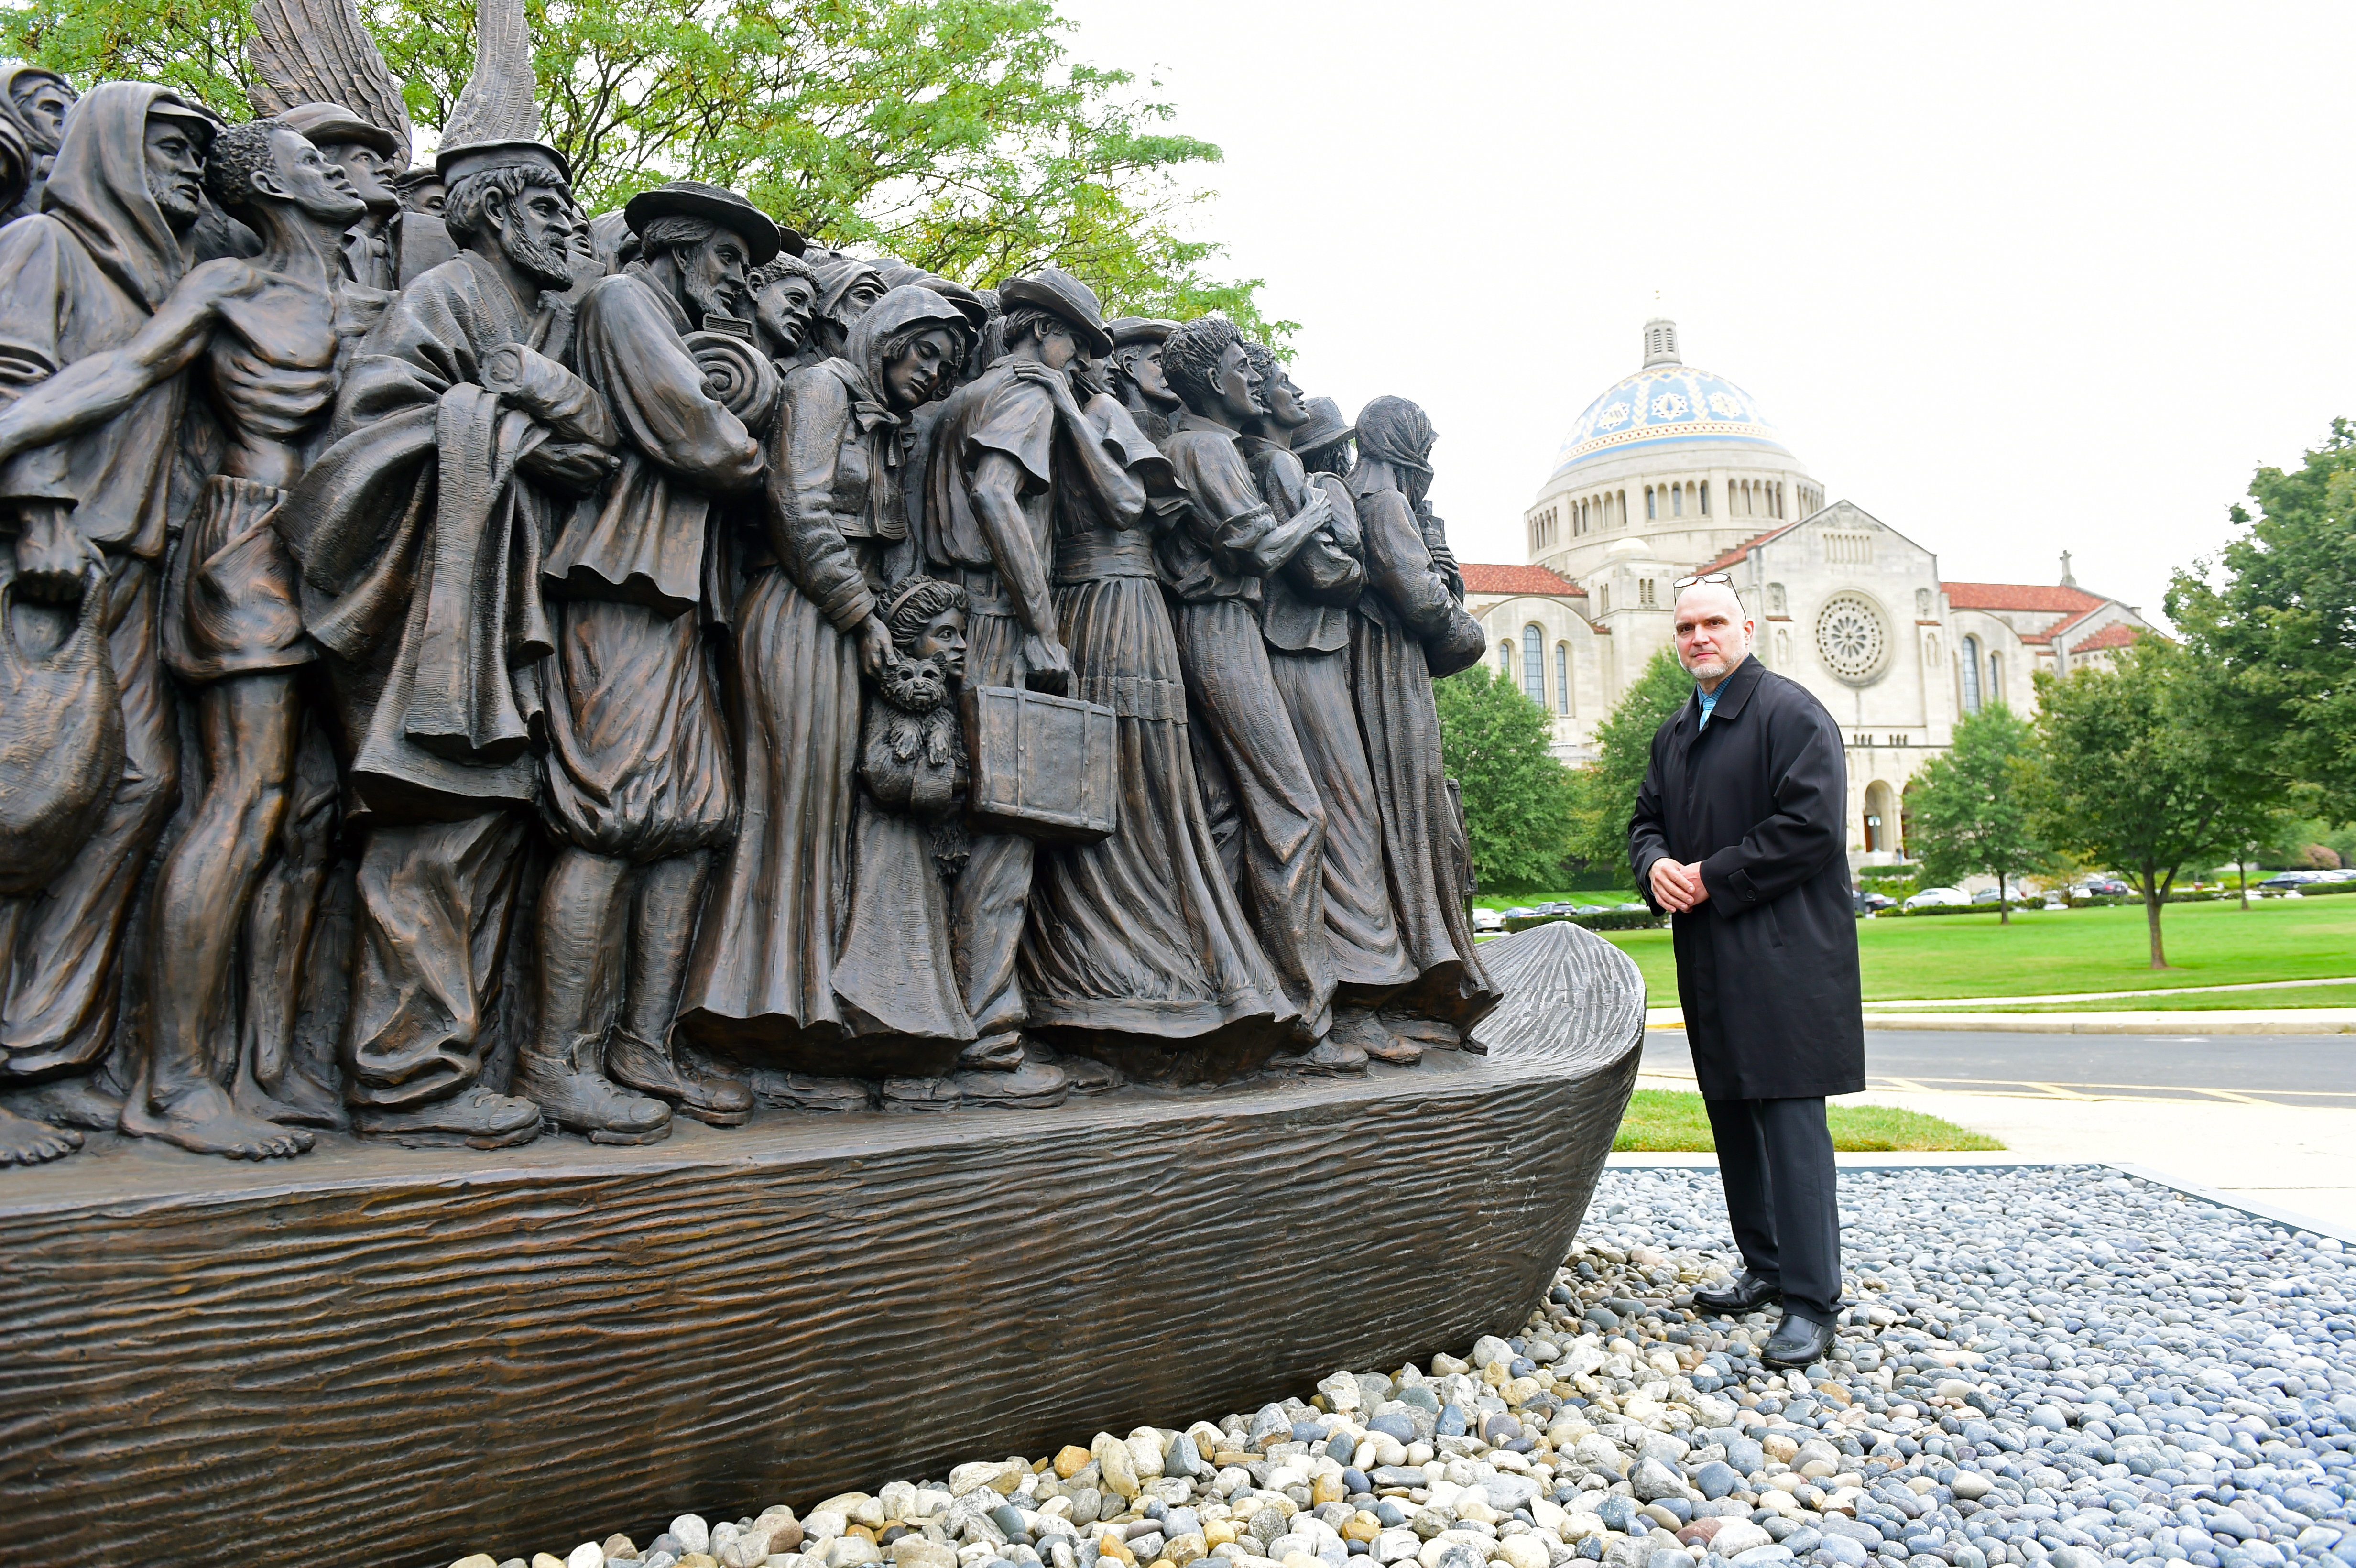 Sculptor Timothy Schmalz with his statue, called Angels Unawares. Photo: Patrick G Ryan, Catholic University Photographer